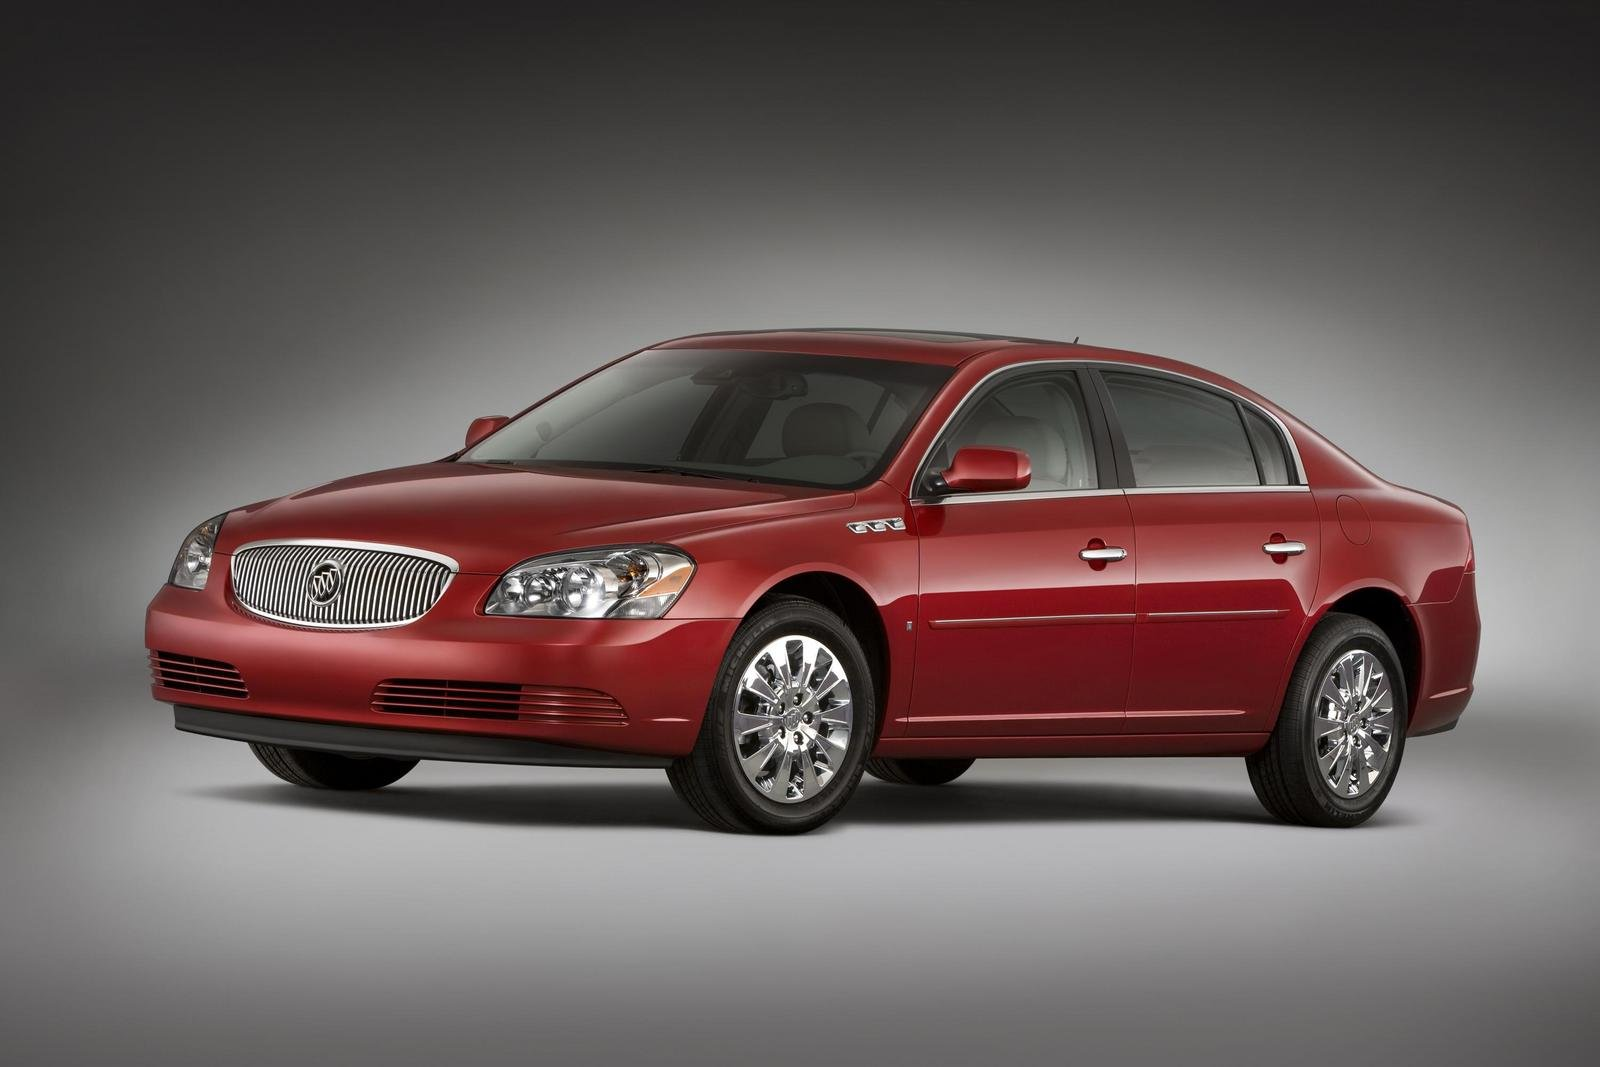 2008 buick lucerne cxl special edition picture 241974. Black Bedroom Furniture Sets. Home Design Ideas